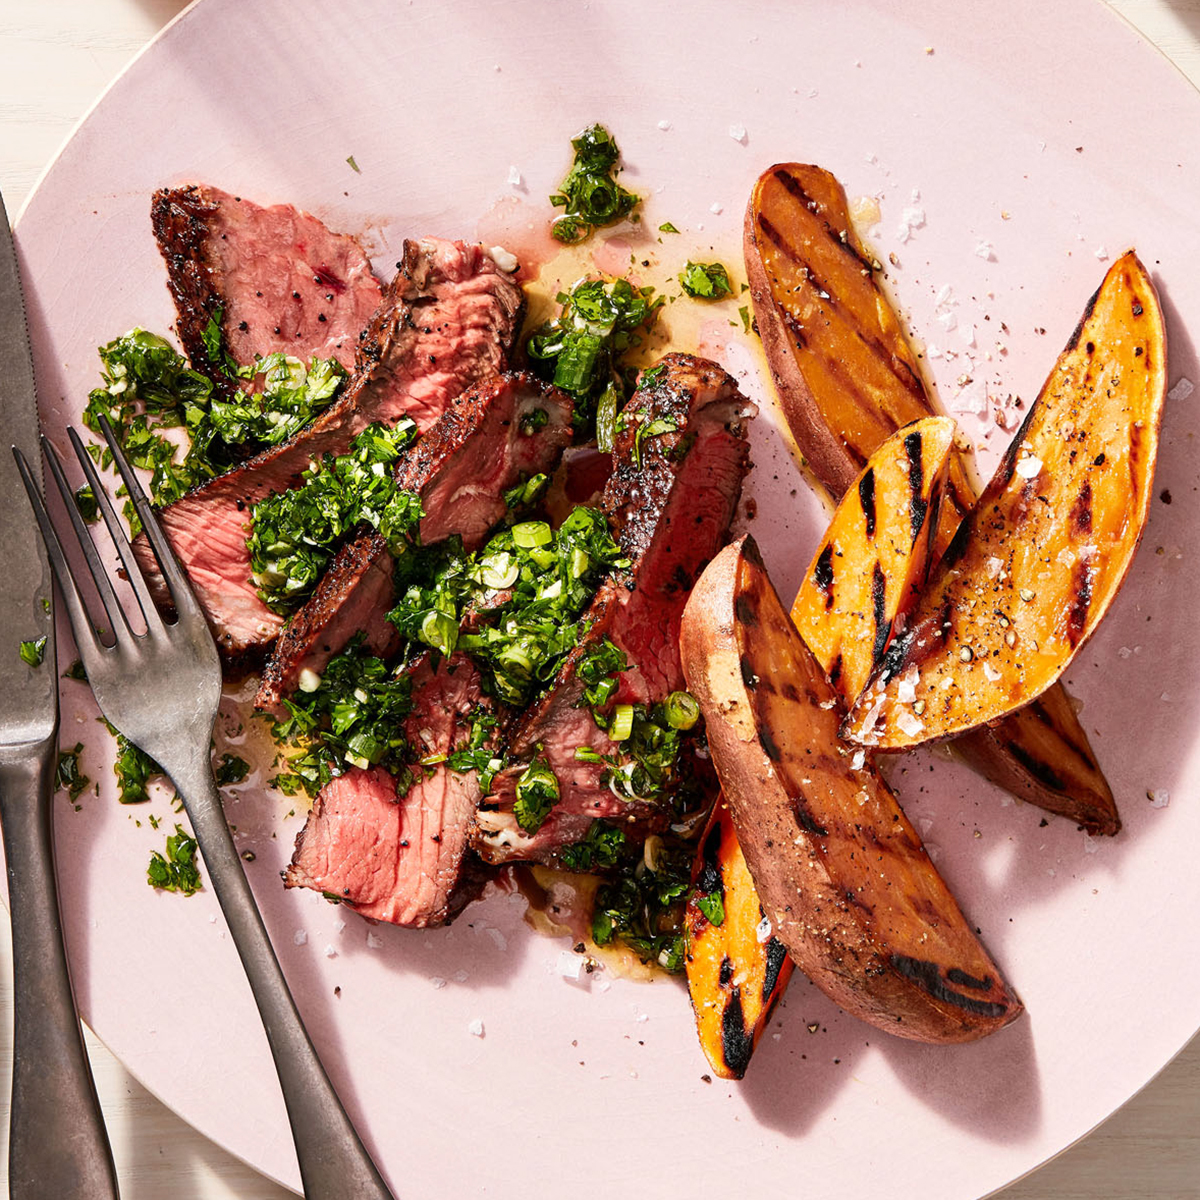 Grilled Steak & Sweet Potatoes with Herby Sauce